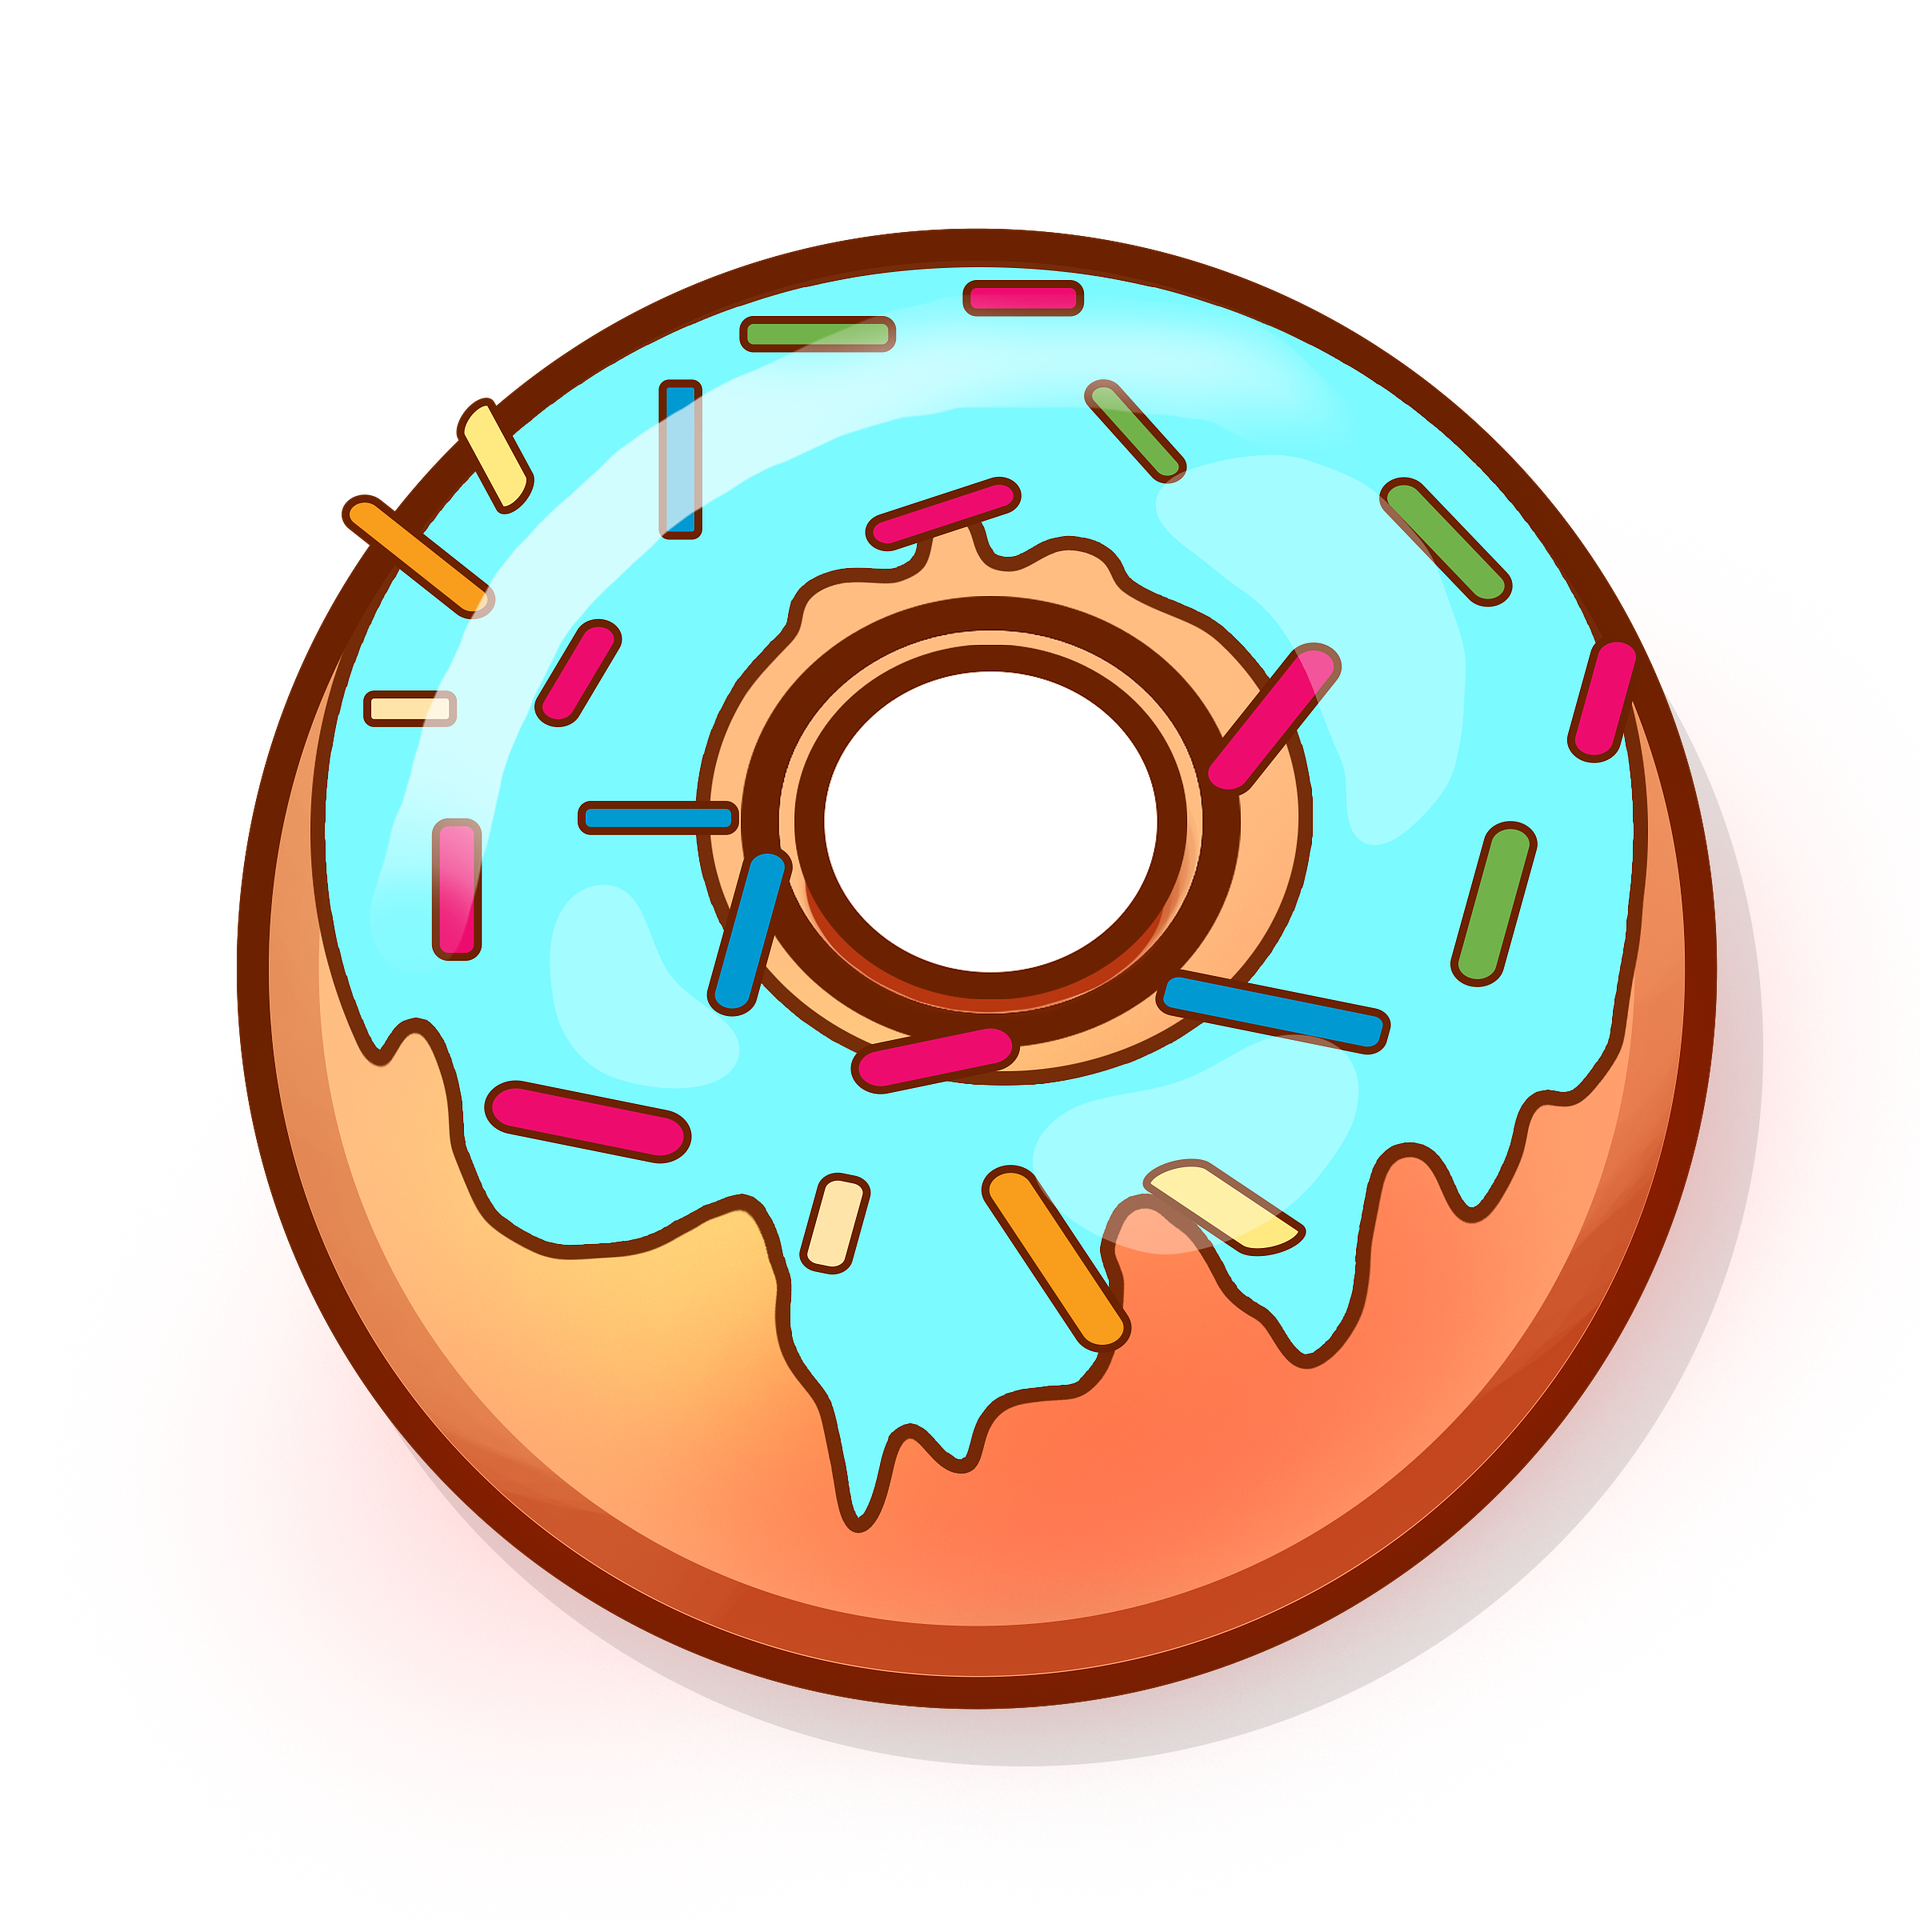 Donut clipart blue. Eat sugarboy donuts donutpng